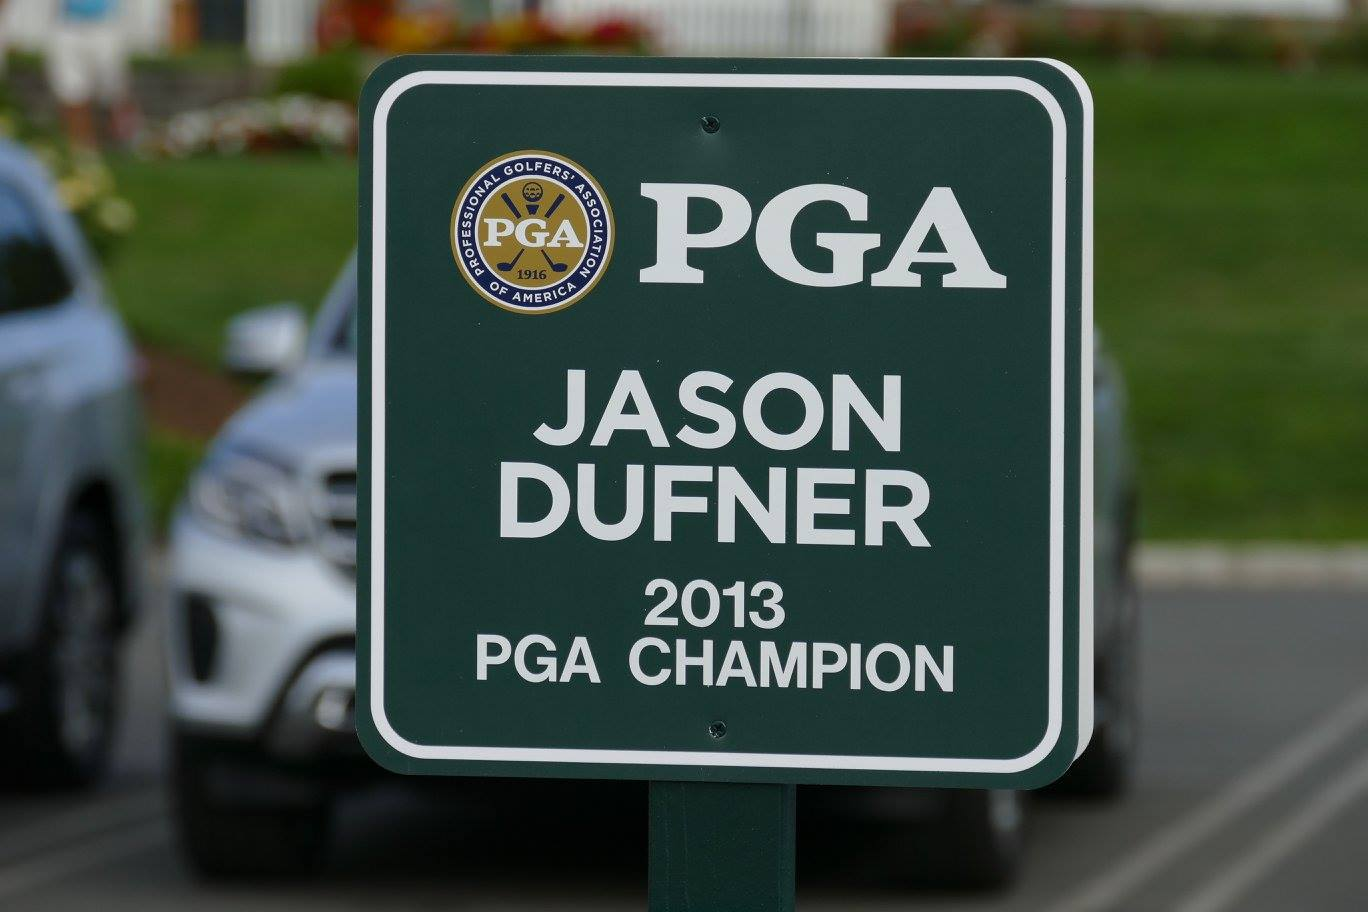 Nearby, you'll find 2013 PGA Champion and...